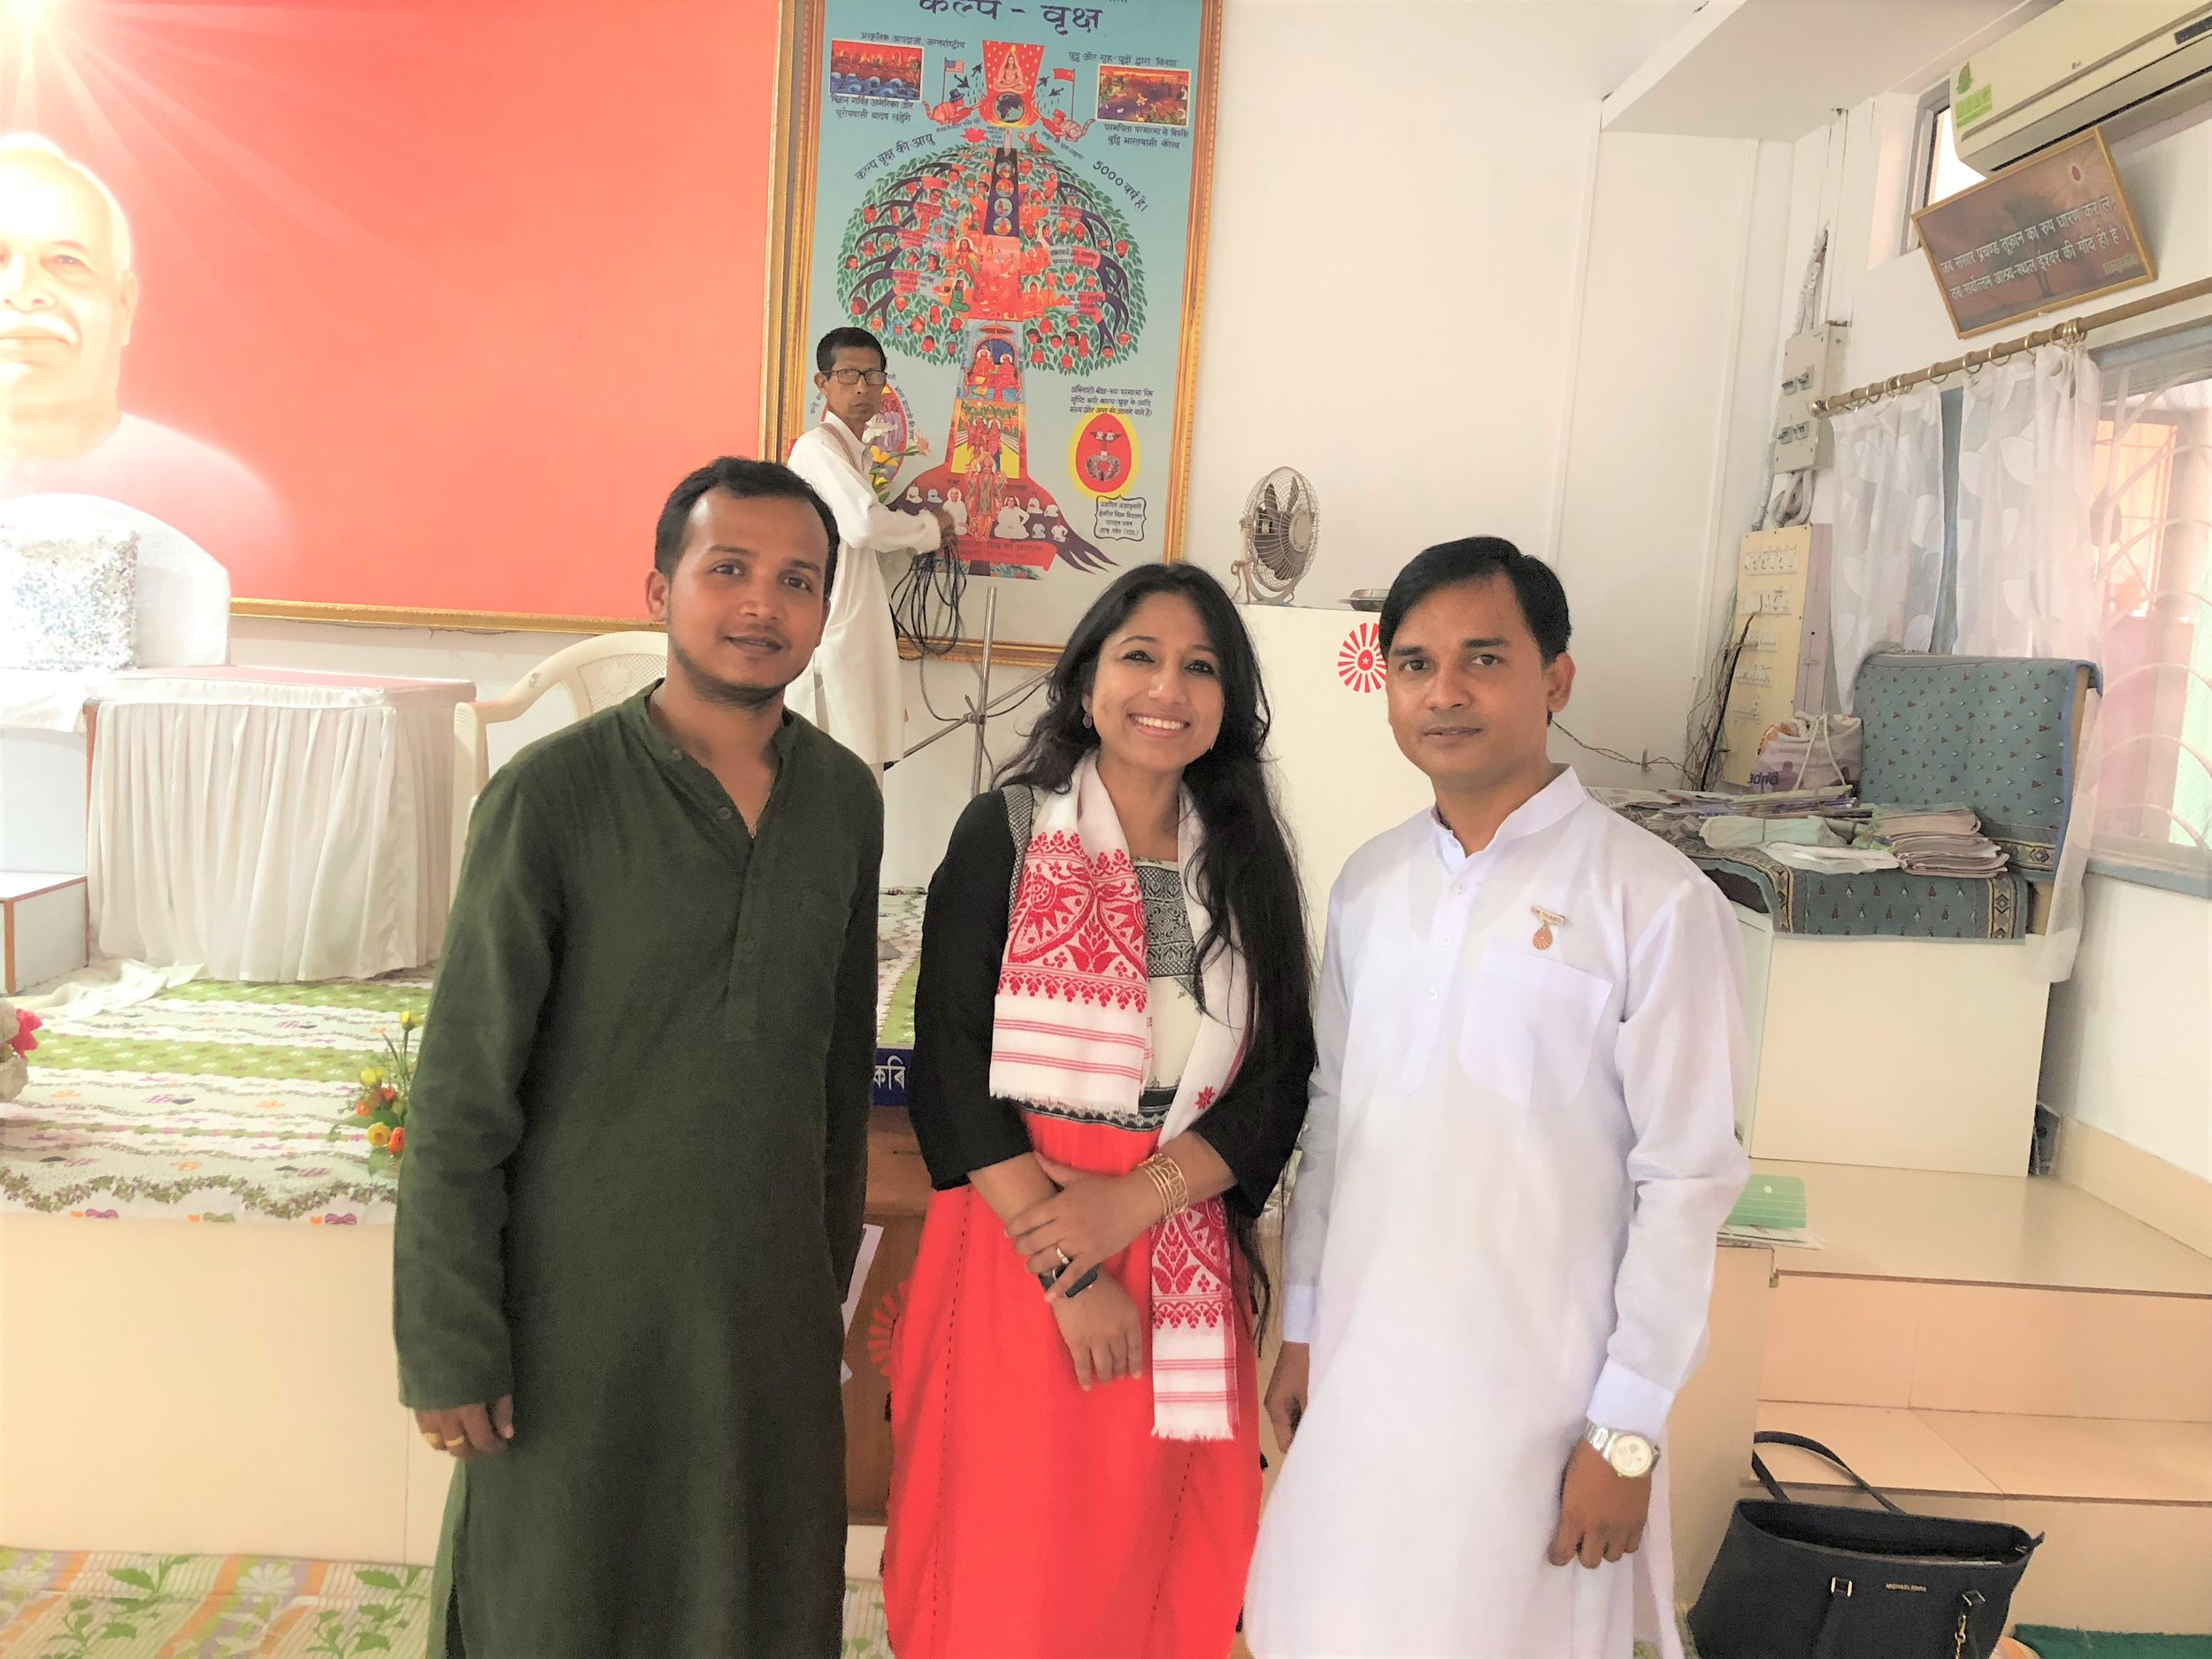 Event: Organized by Bodhana at Prajapati Brahma Kumaris, Guwahati. Sincerely grateful to Bodhana for organizing the event. Bodhana was founded in late 2017 by three trustees,Mr. Nelson Deb as President, Mr. Shantanu Paul as Treasurer and Mr. Sandip Nath as Secretary. Although they were all working in different sectors in life but they have one common passion which brings them together. Their passion is to work for the welfare of the society. Bodhana primarily focuses on women's health and sanitation. Currently it isworking on adolescent girls and women's menstrual health needs. Its main objective is to increase access to sanitary protection by whatever means necessary, reduce the cost of sanitary protection to a reasonable price point, making it affordable and develop economic opportunities by producing sanitary pads locally and building local jobs. Bodhana is also working on sustainability by ensuring that their product is optimally sustainable along every piece of the supply chain. My heartfelt thanks to Bodhana for their collaboration and supporting the cause! Bodhana will distribute free BSE cards and also talk about Breast health to areas of their outreach. Great initiative by the founders of Bodhana. I sincerely thank them for their selfless thought process. Thanks to Dr. Ishita Deb for connecting me to Bodhan